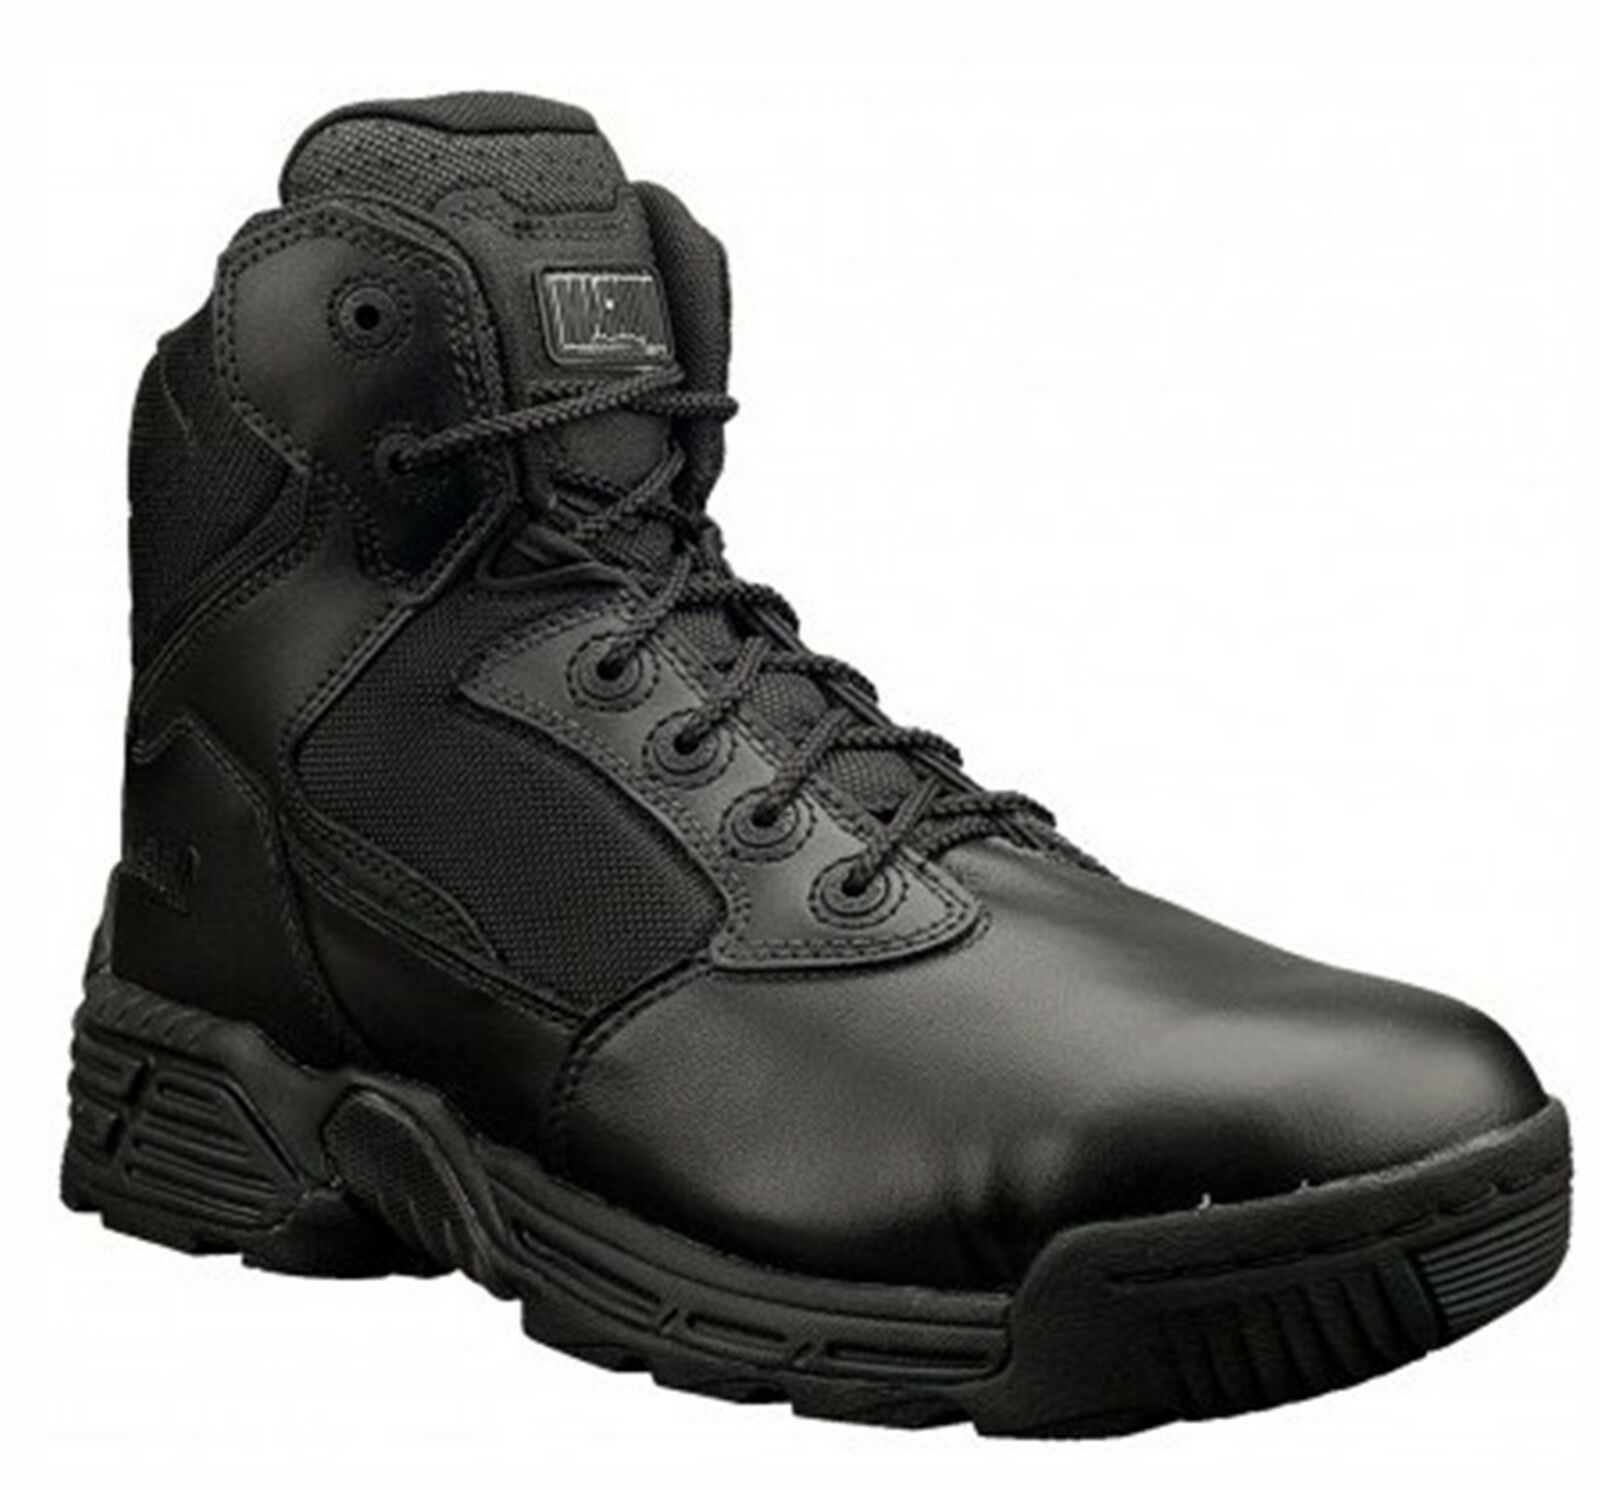 Magnum 5226 Stealth Force 6.0 Side Zip Tactical EMS Military Police Boots